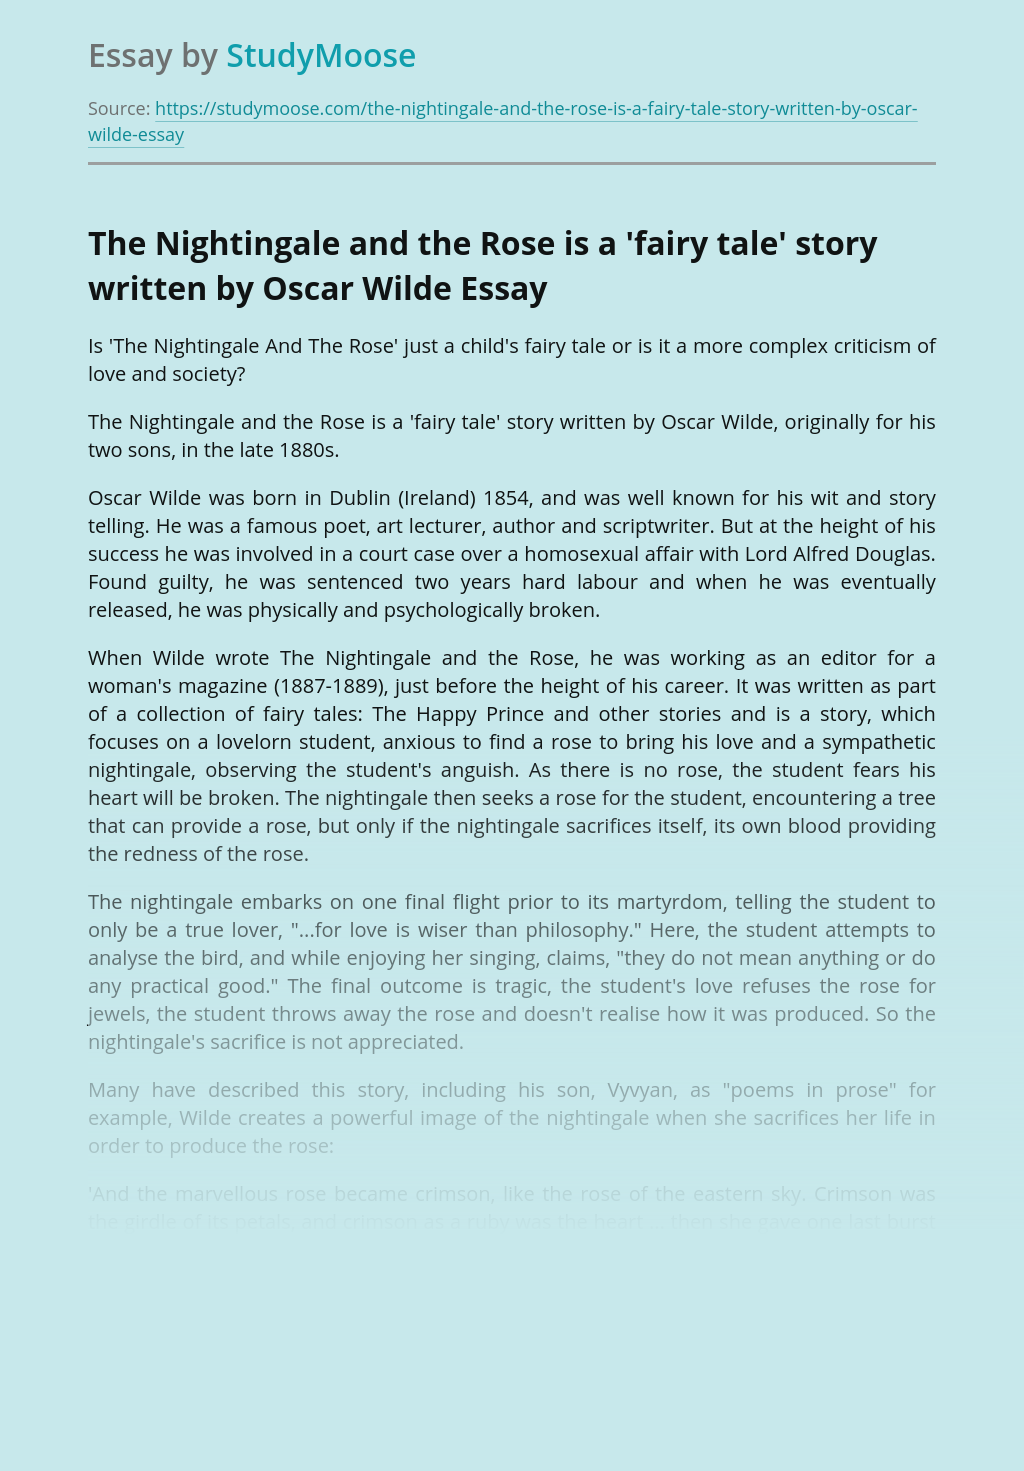 The Nightingale and the Rose is a 'fairy tale' story written by Oscar Wilde